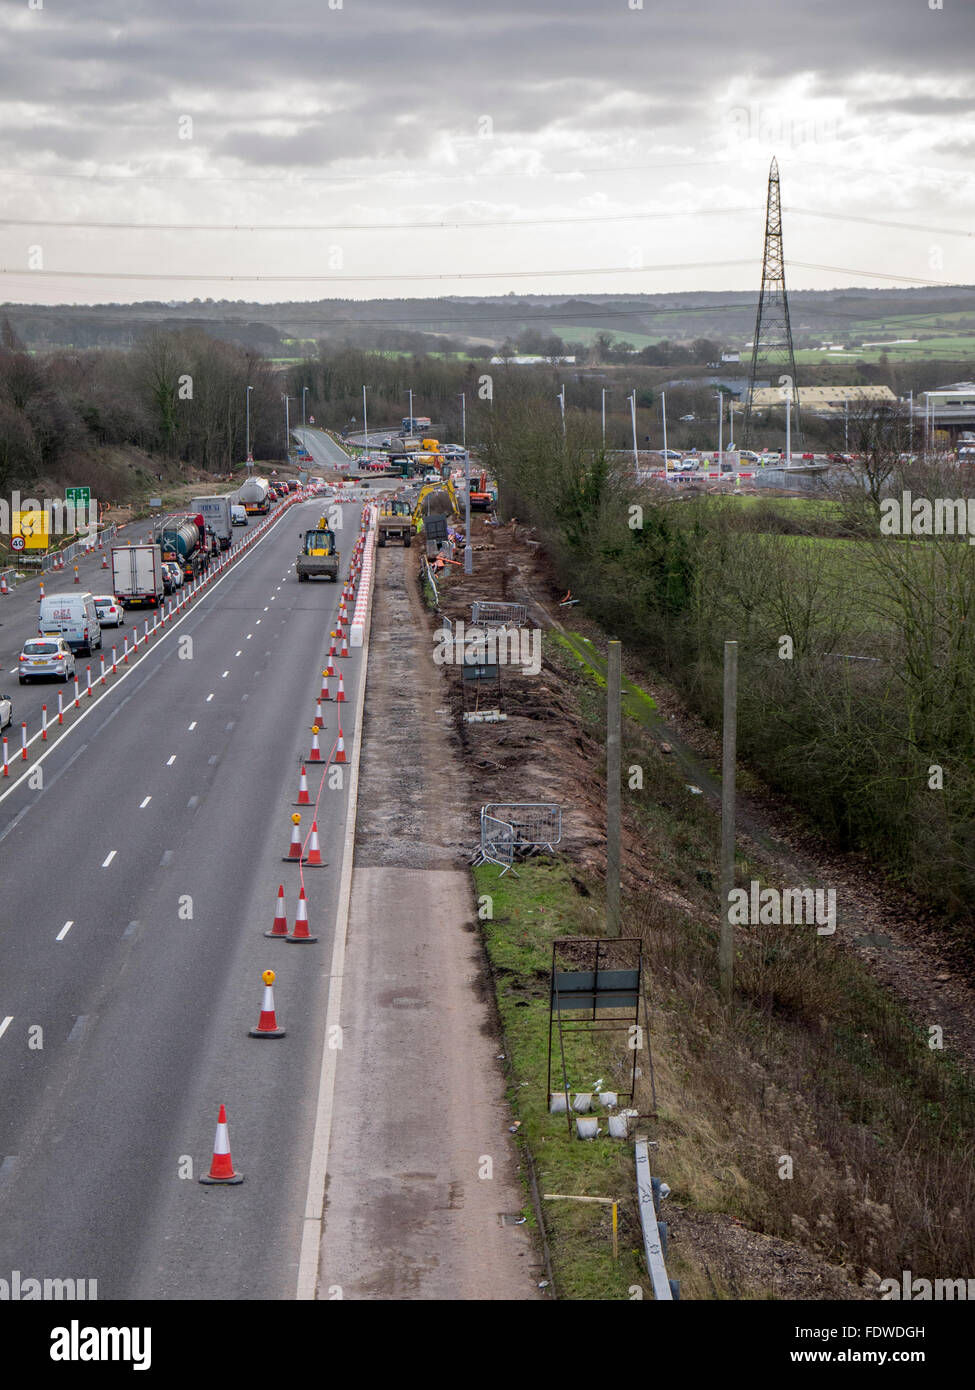 Construction on hard shoulder of road, coned off to traffic. - Stock Image